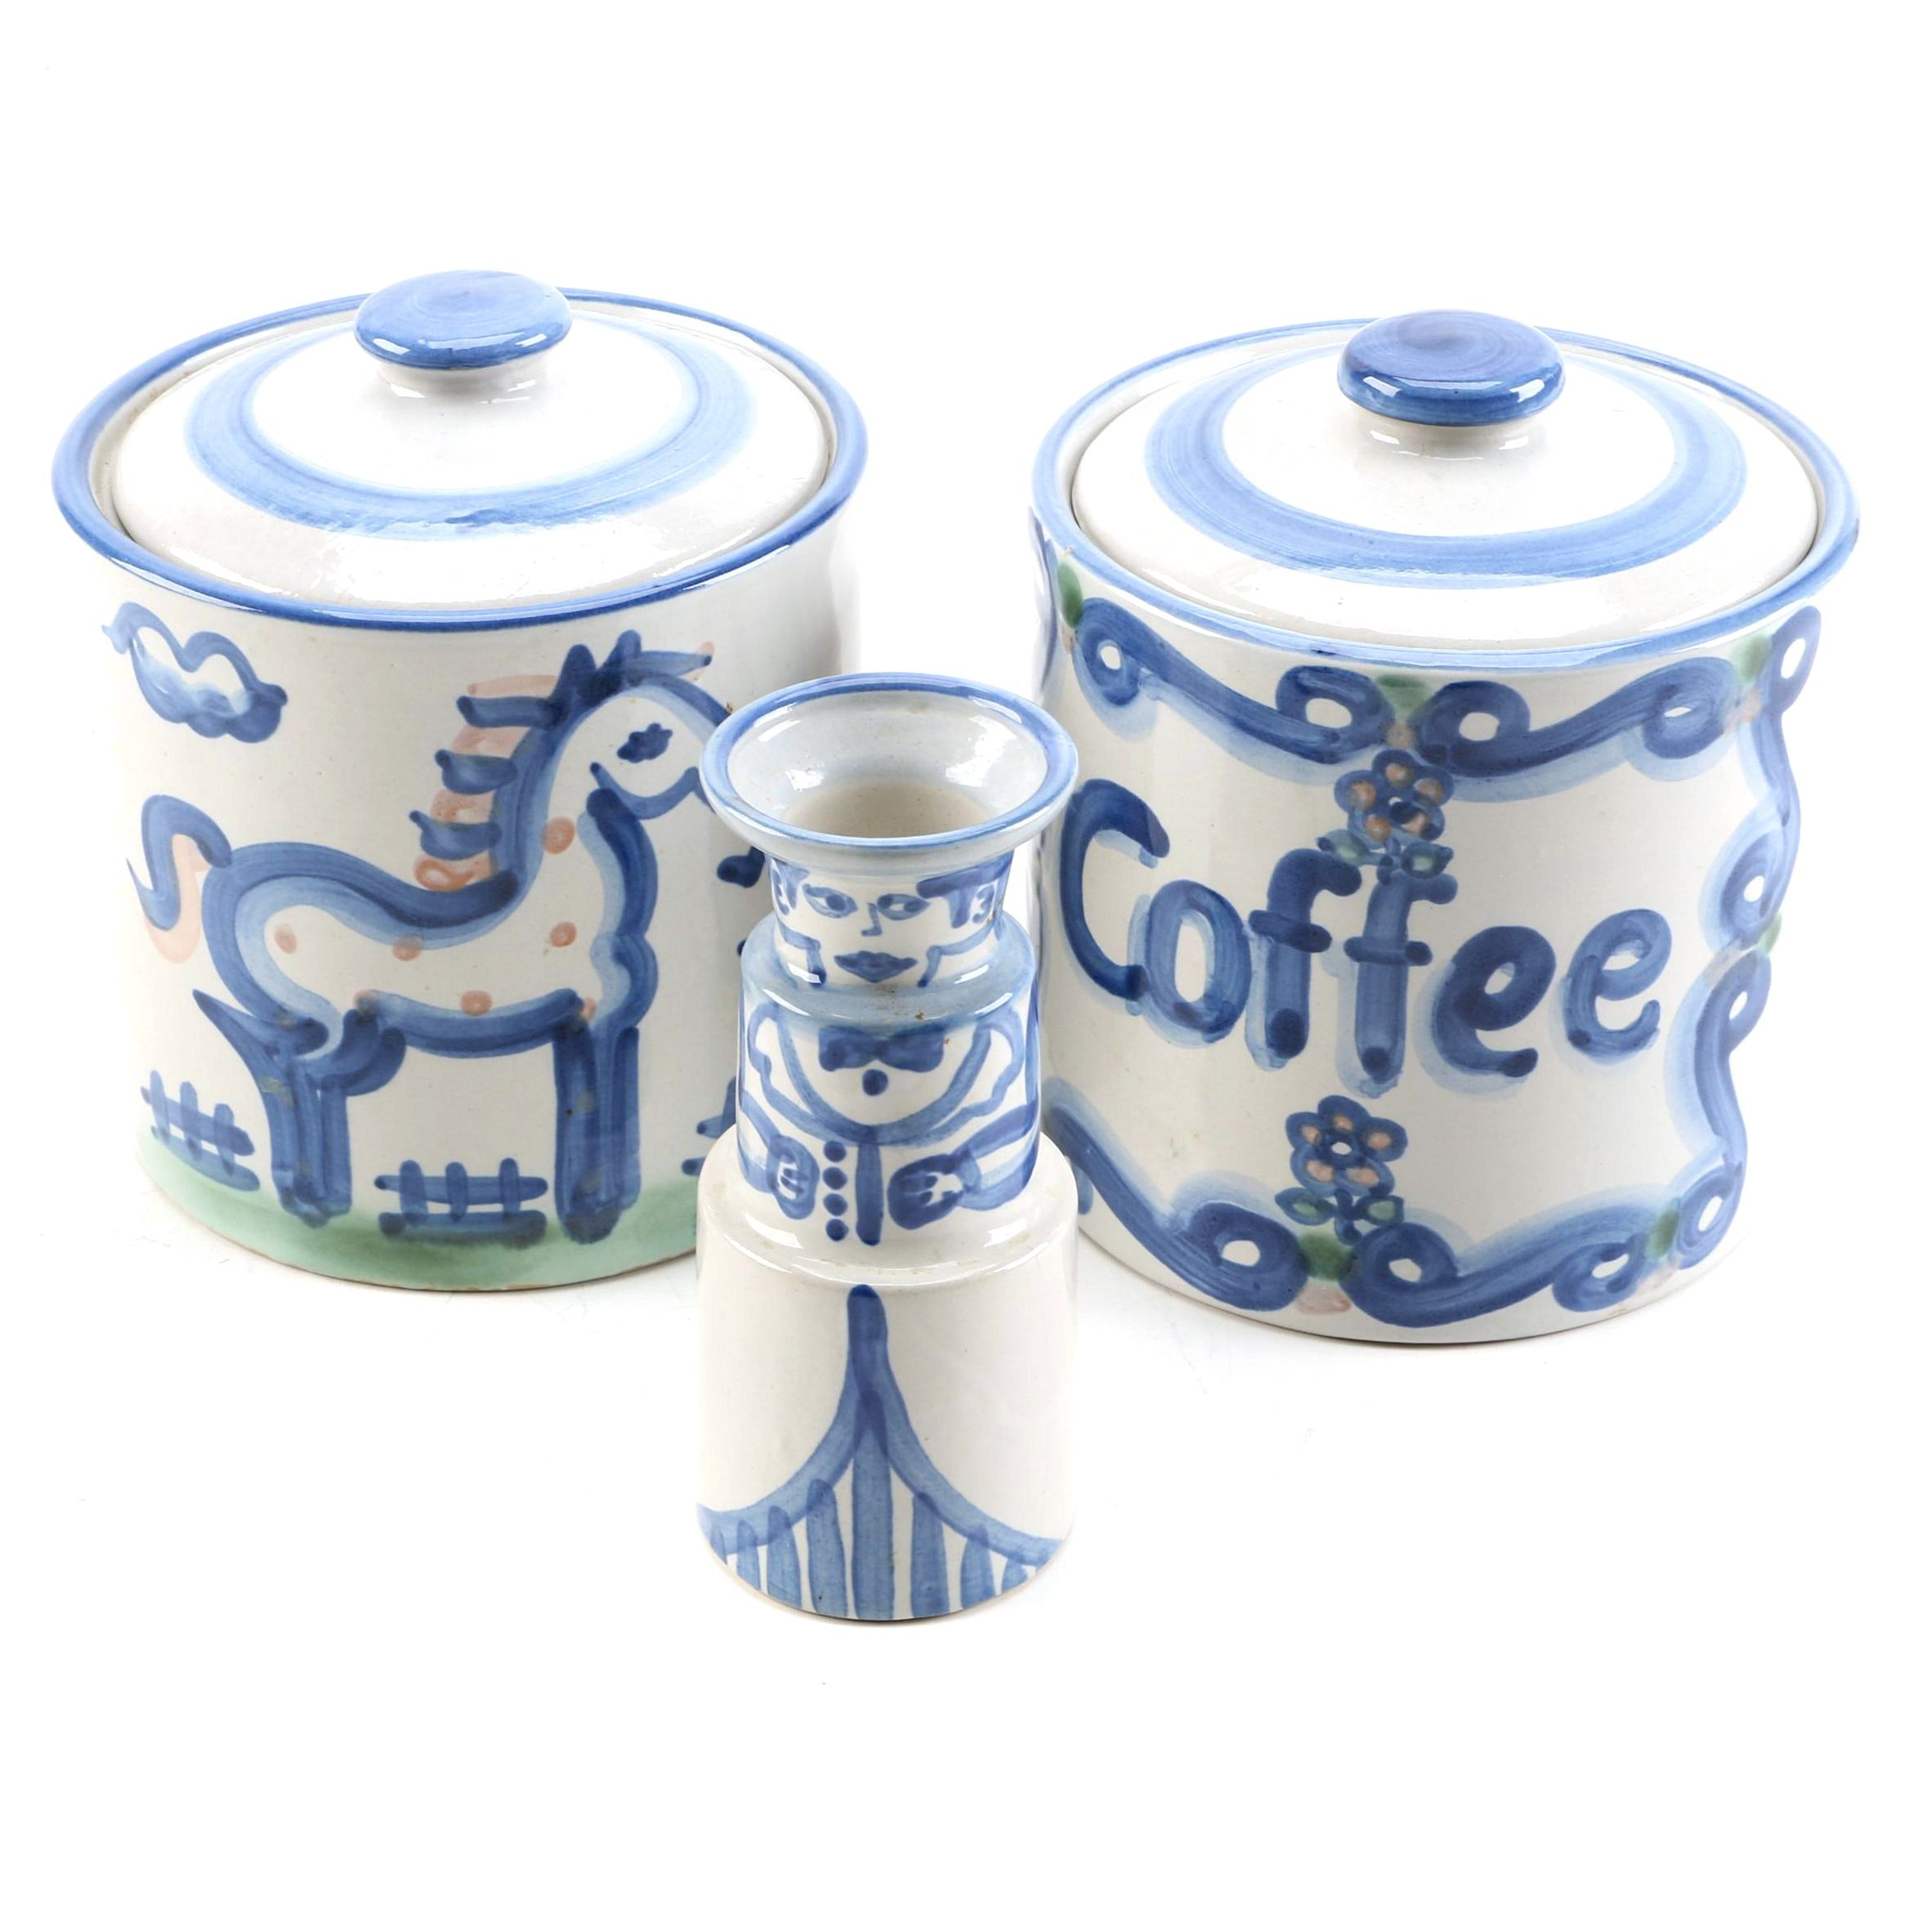 M. A. Hadley Pottery Lidded Canisters and Candle Holder